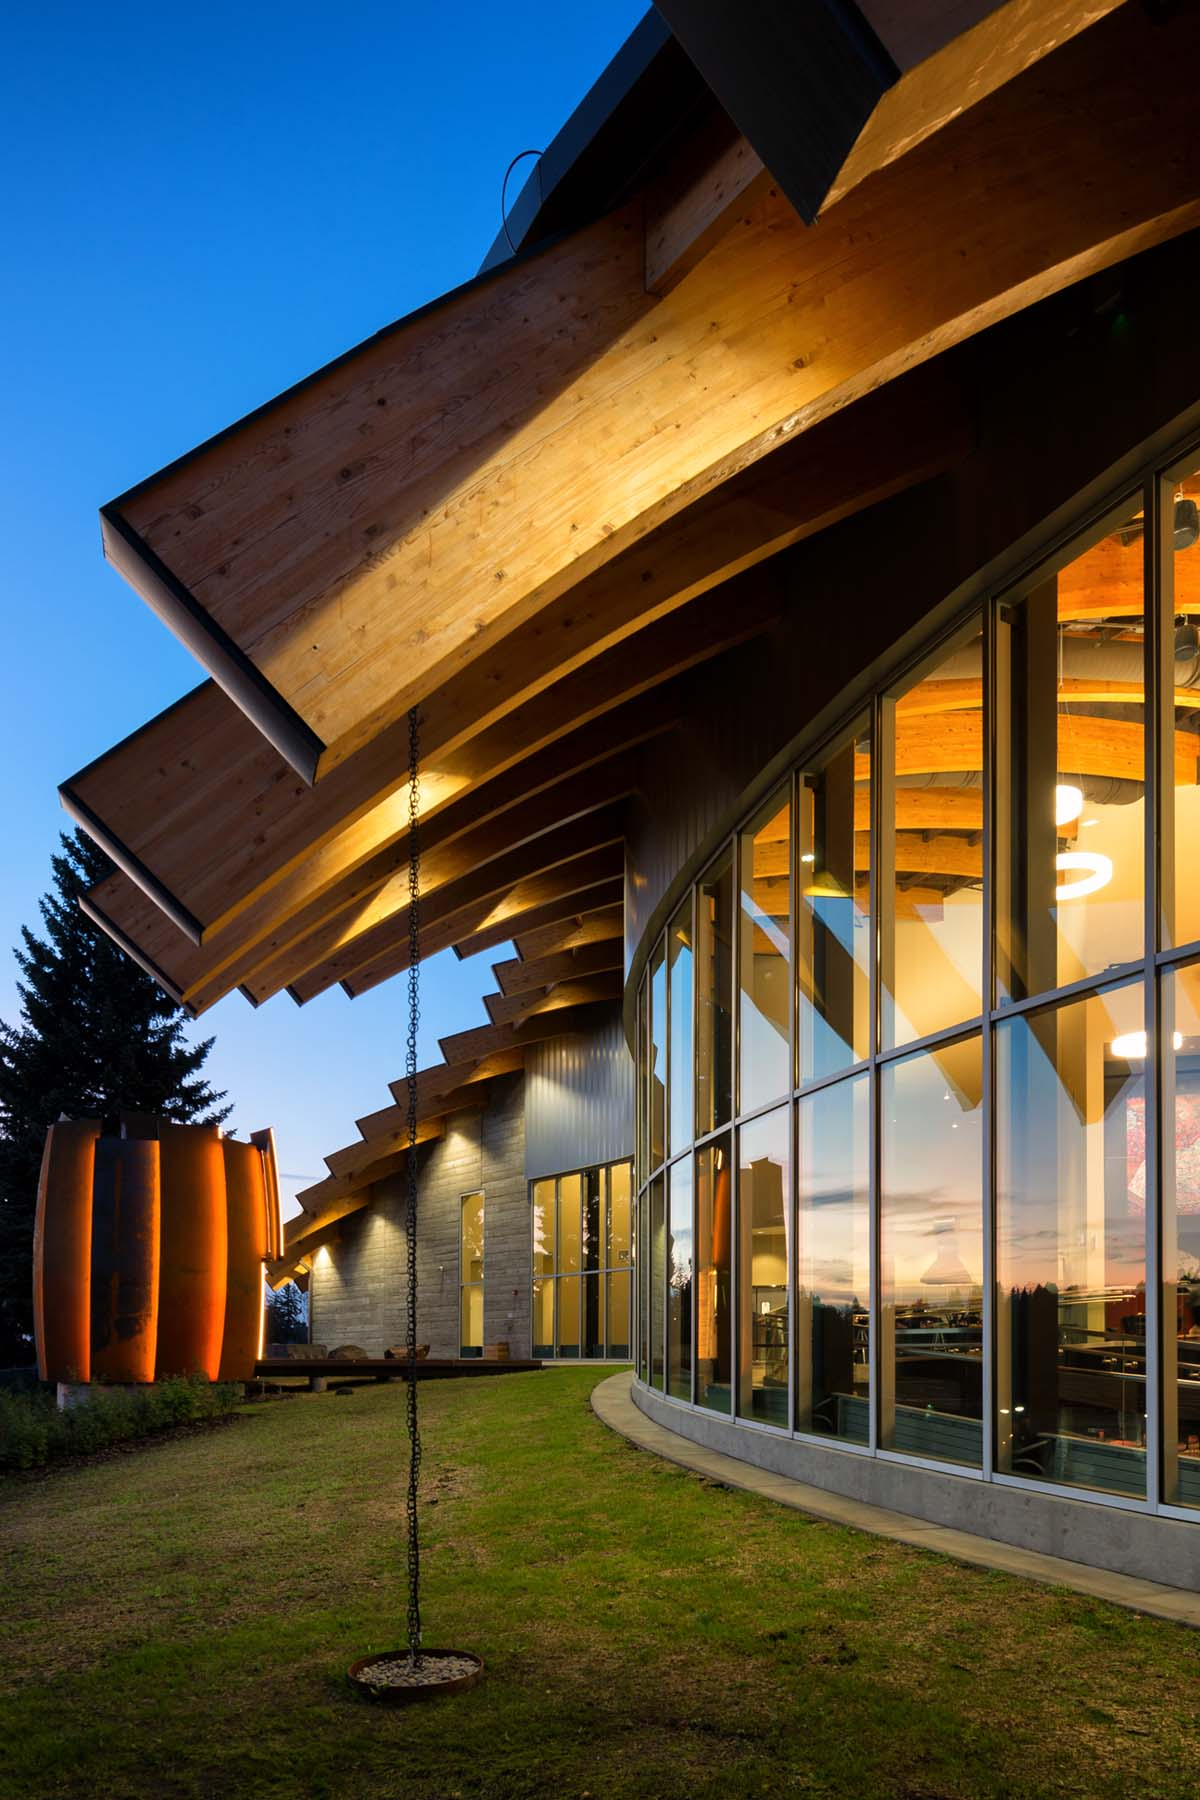 Washington State University <br/> Elson S. Floyd Cultural Center